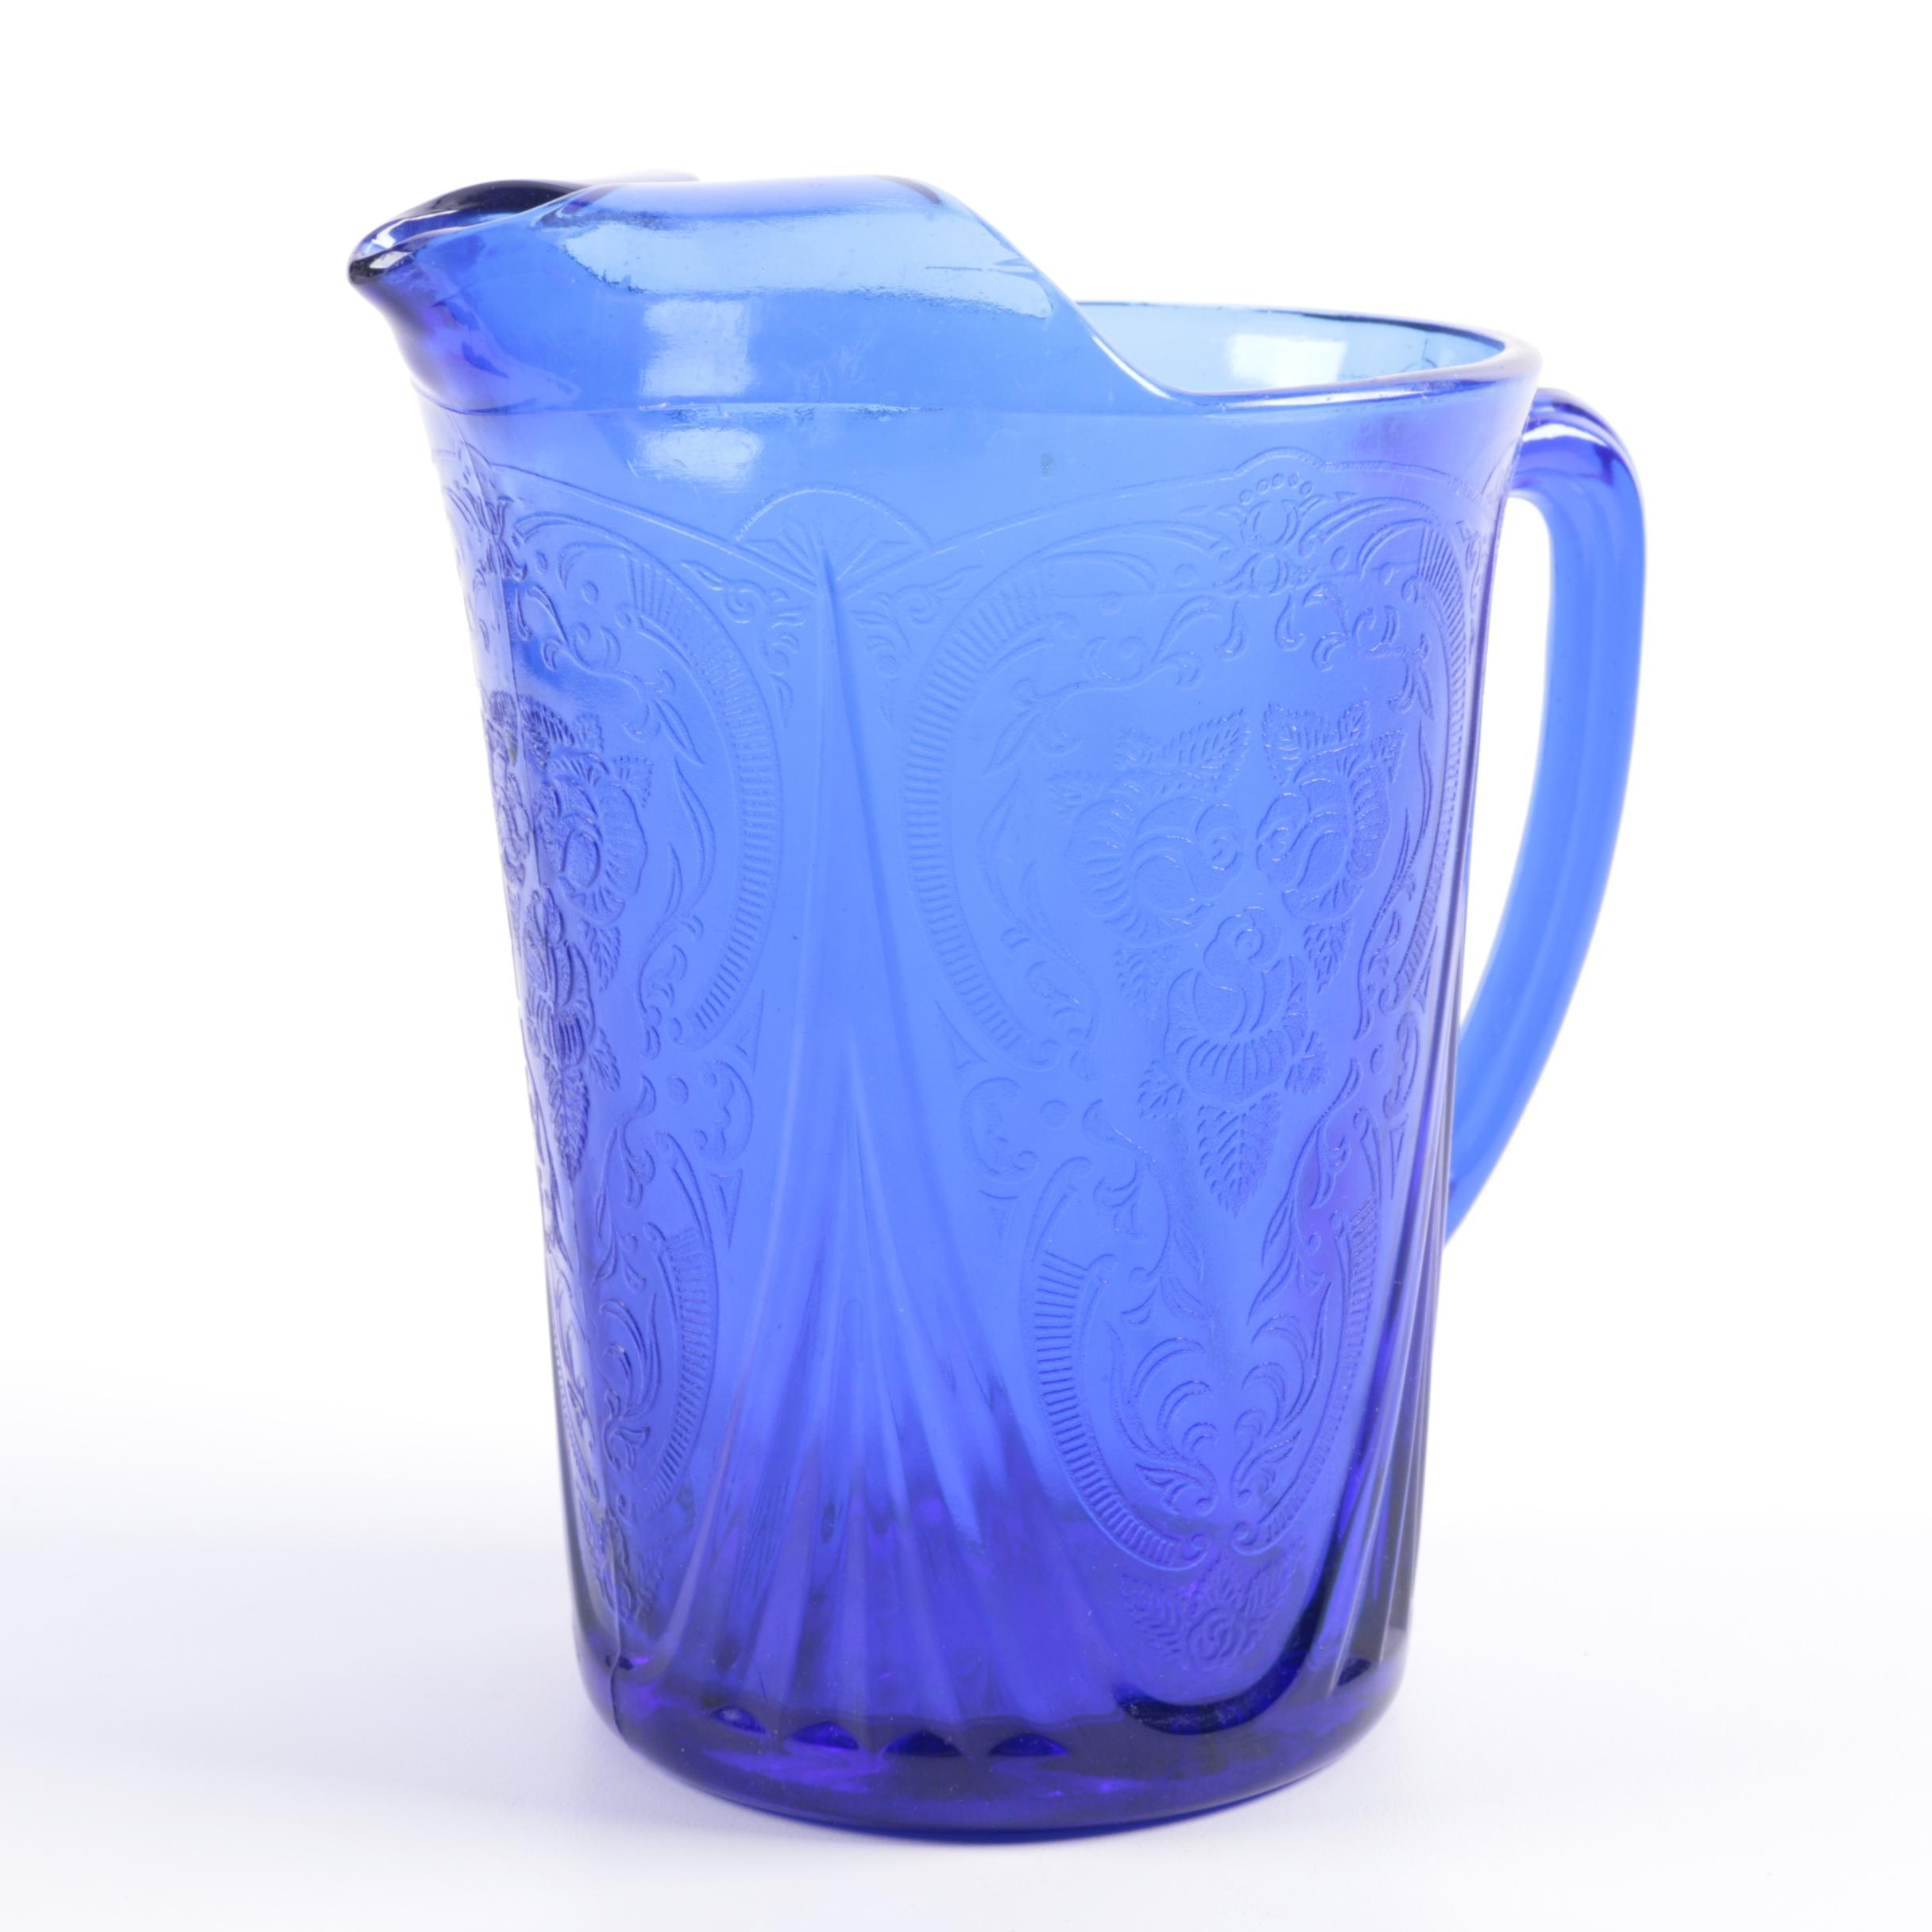 Pressed Blue Glass Rose and Scrolled Foliate Motif Pitcher